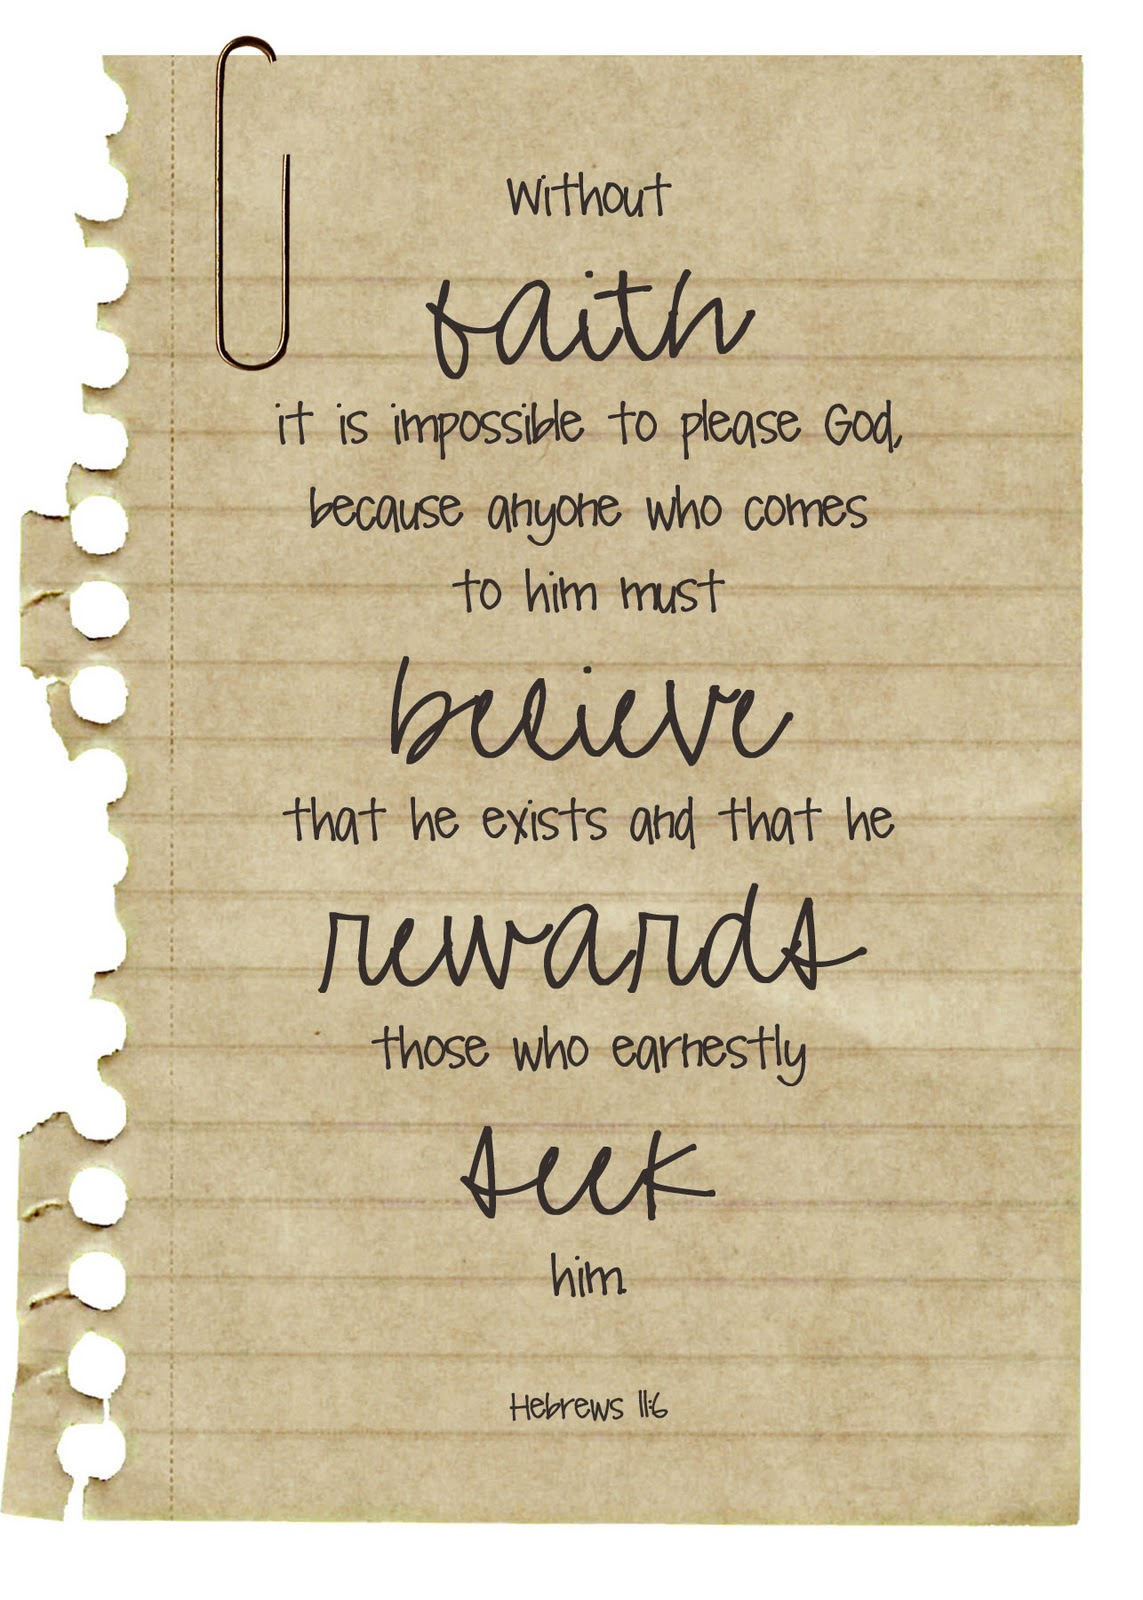 Hebrews 11 6 Pictures to Pin on Pinterest - ThePinsta